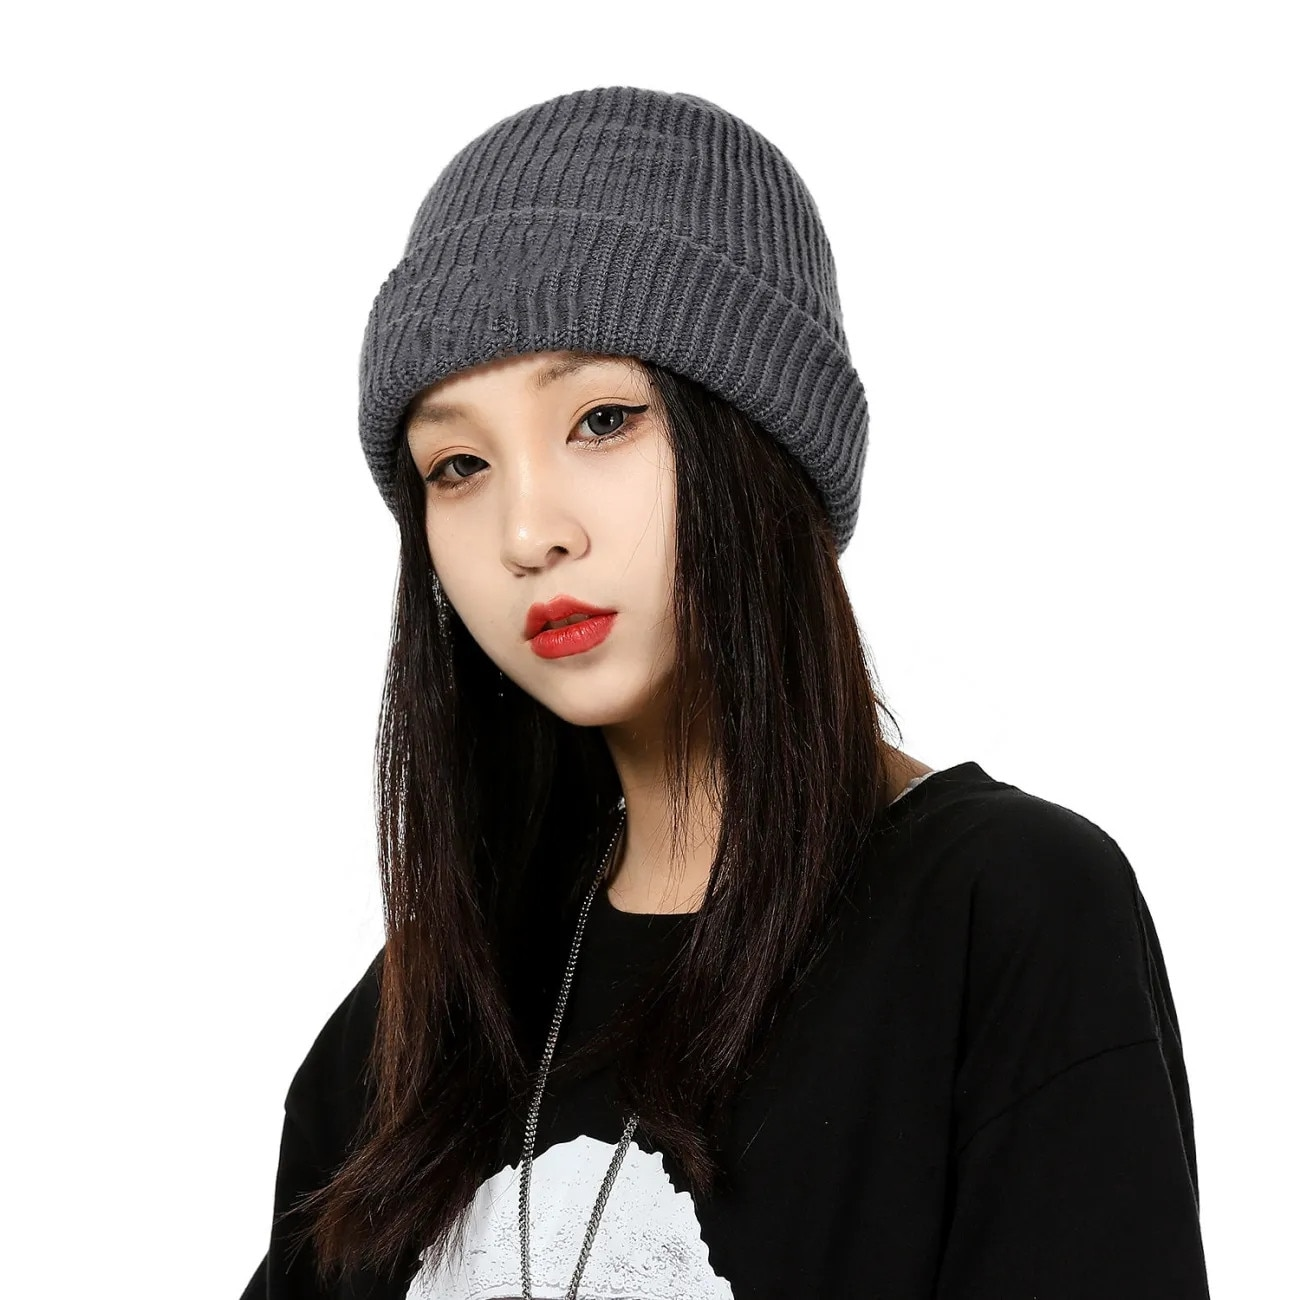 COTTON HAT Autumn and Winter Knitted Hat Plush Thickened Couple Warm and Cold Proof Men's and Women's Hat Trend Versatile